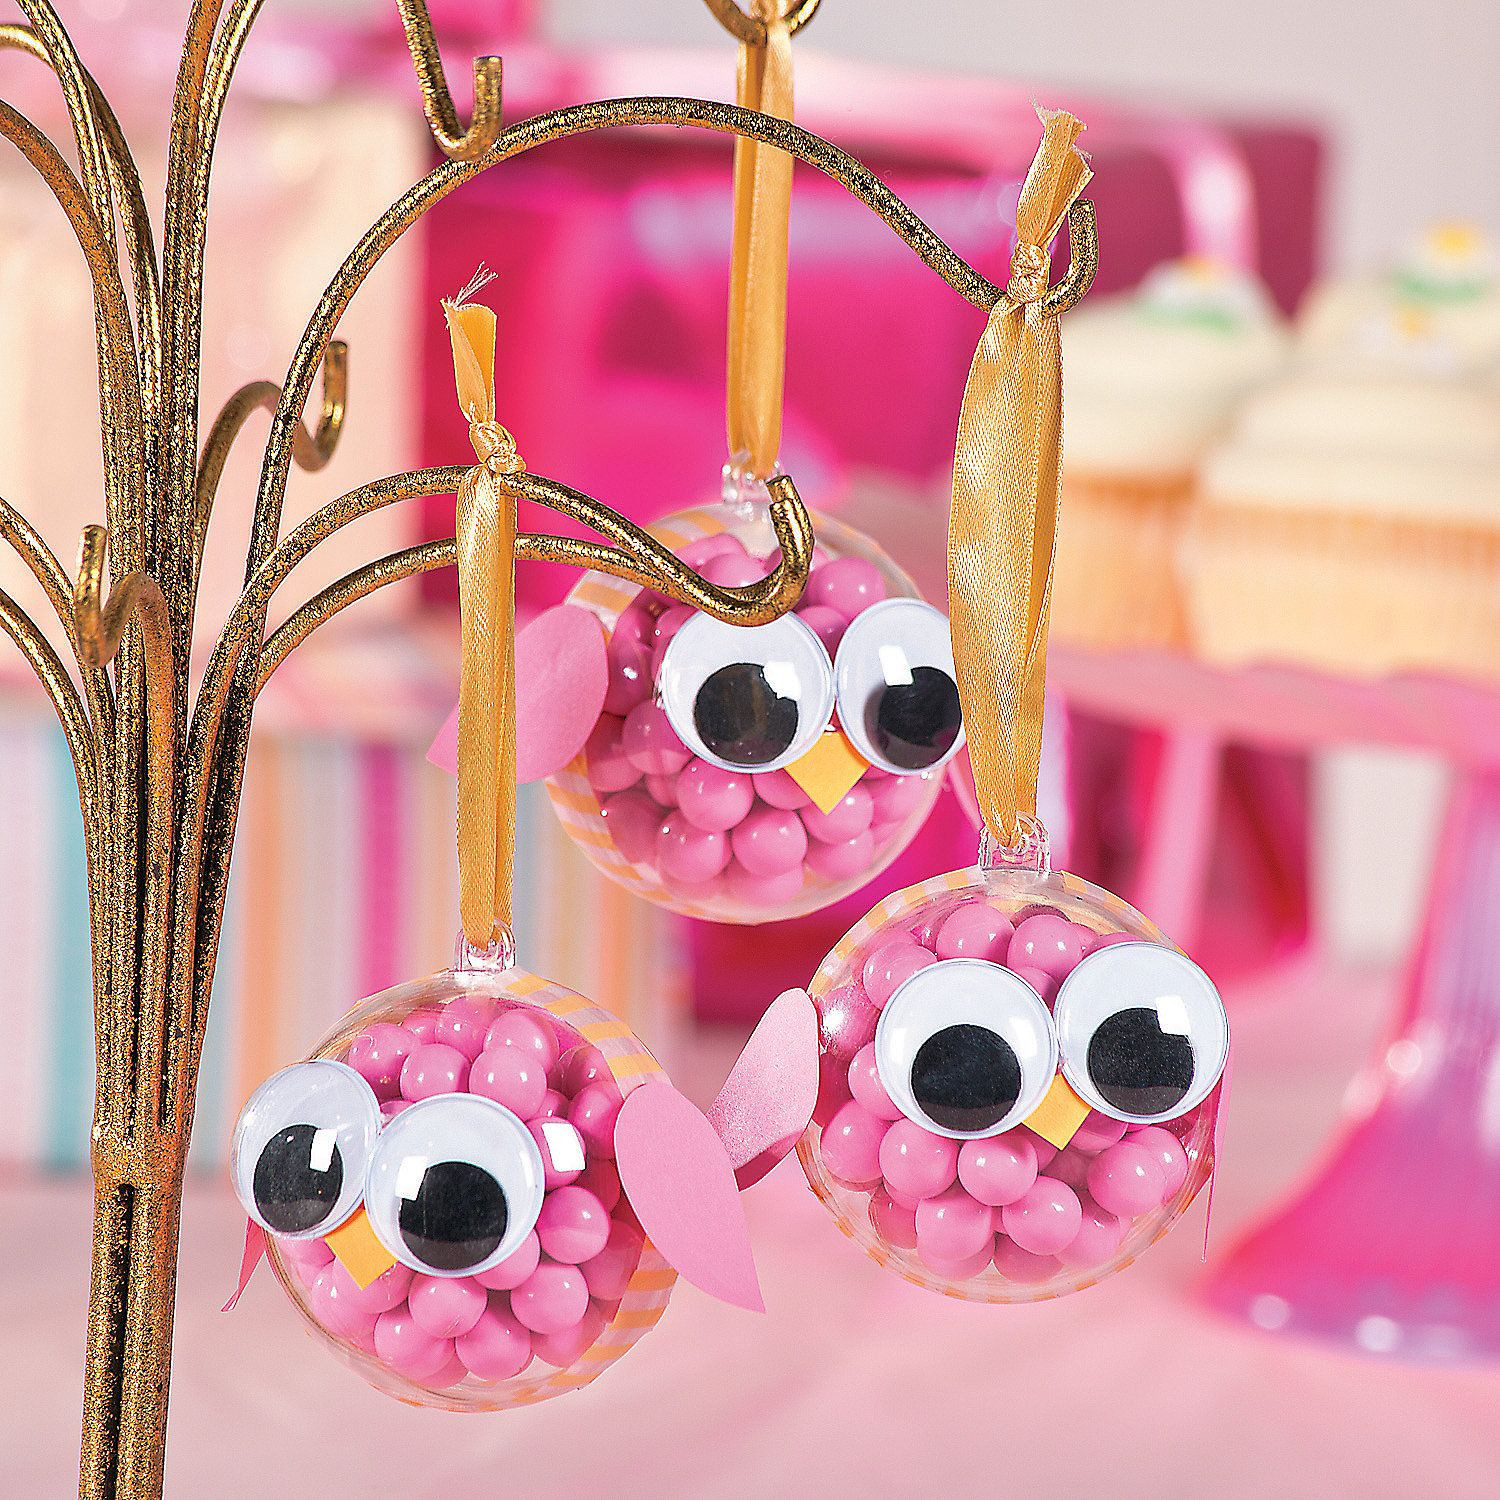 DIY Owl Baby Shower Decorations  Owl Baby Shower Favors Idea